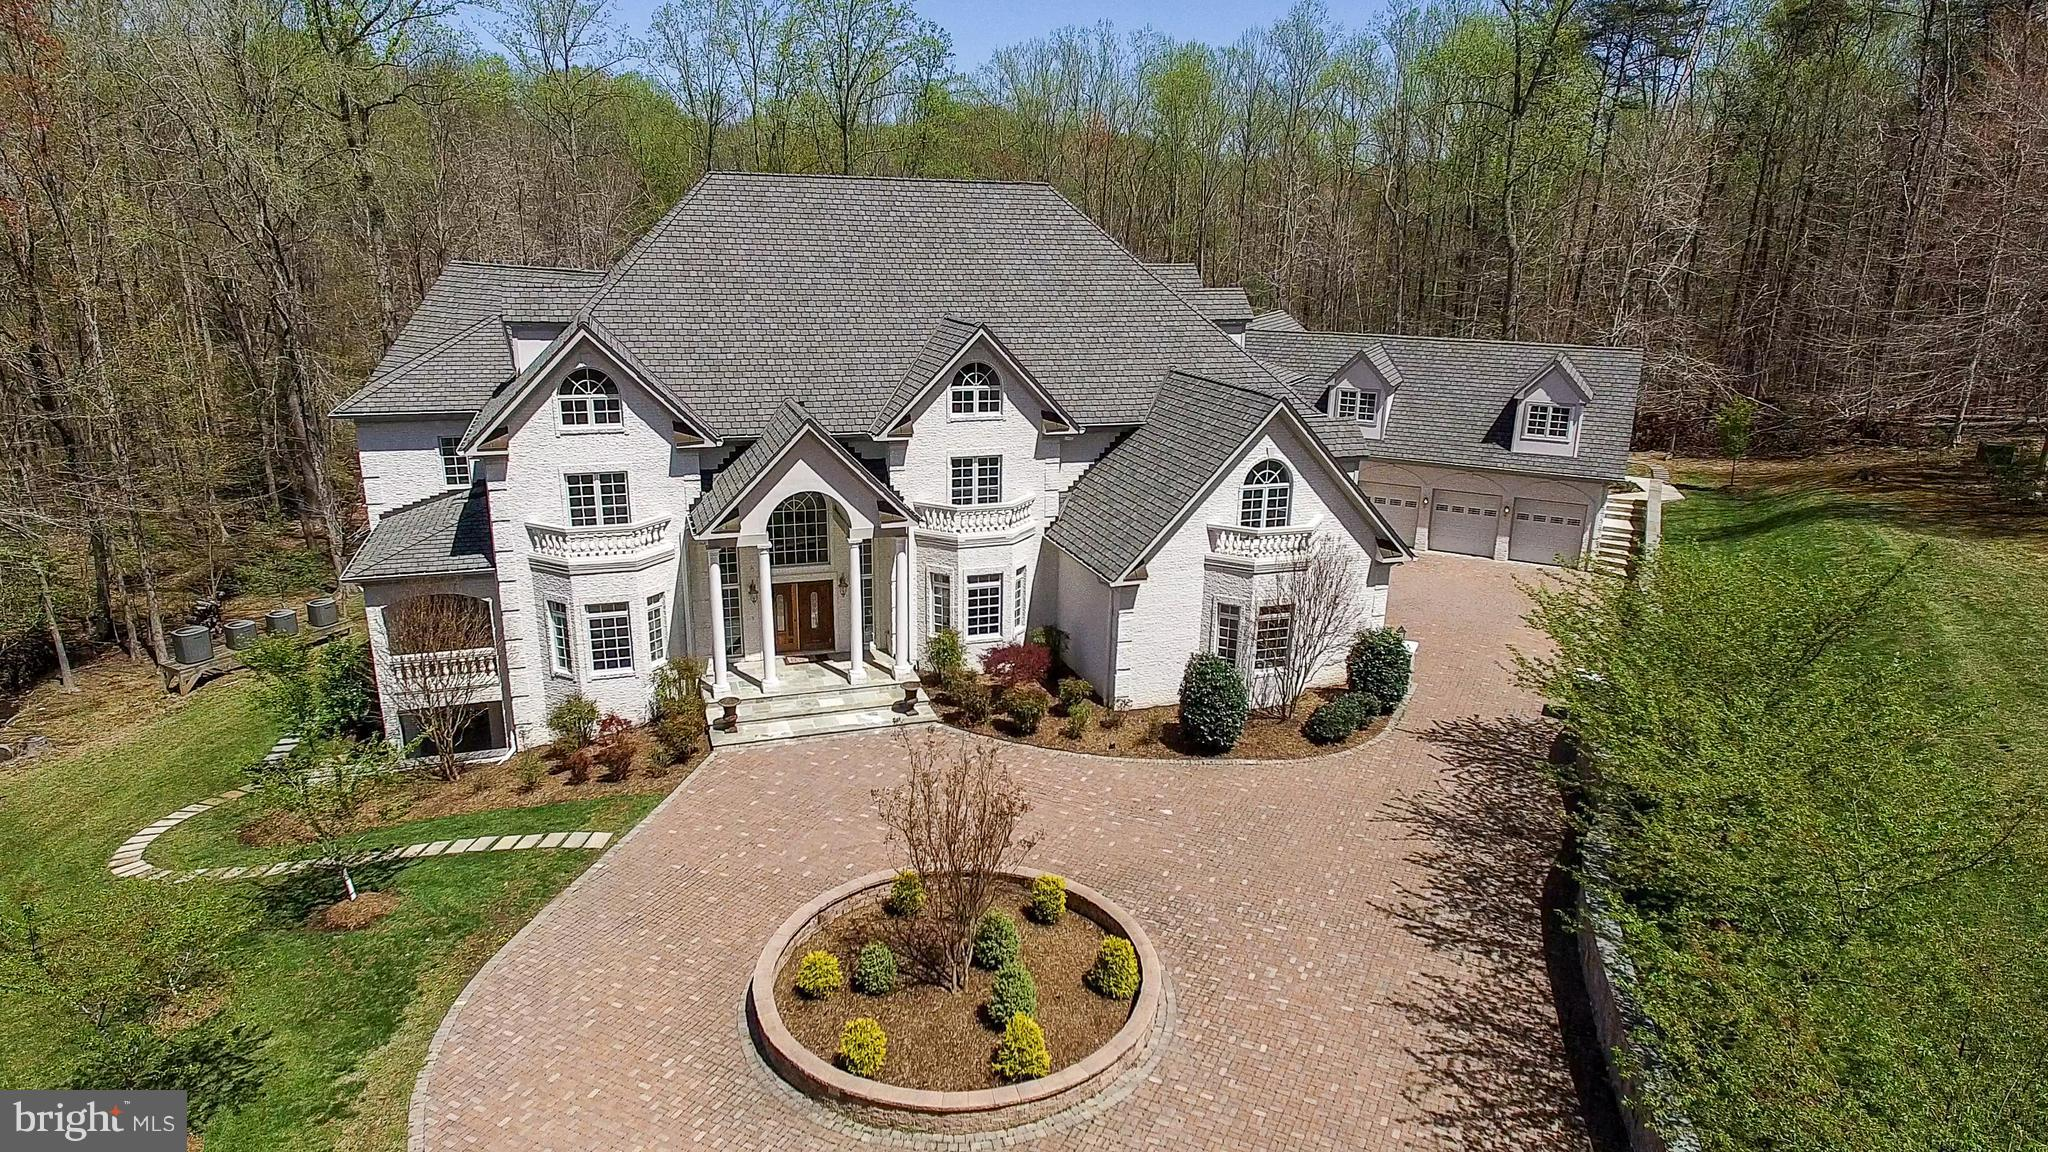 Masterpiece Estate nestled in the midst of 5 wooded acres in sought after Shadowalk. 4 finished levels with elevator. +10,000 SF of luxury living. Perfectly suited for both grand entertaining & comfortable family living. 2,000 SF indoor pool house. Gourmet chef's kitchen. Home theater. 6-car garage. 3 staircases. 5 master suites. 5 fireplaces. Access to extensive equestrian trails. Exquisite.